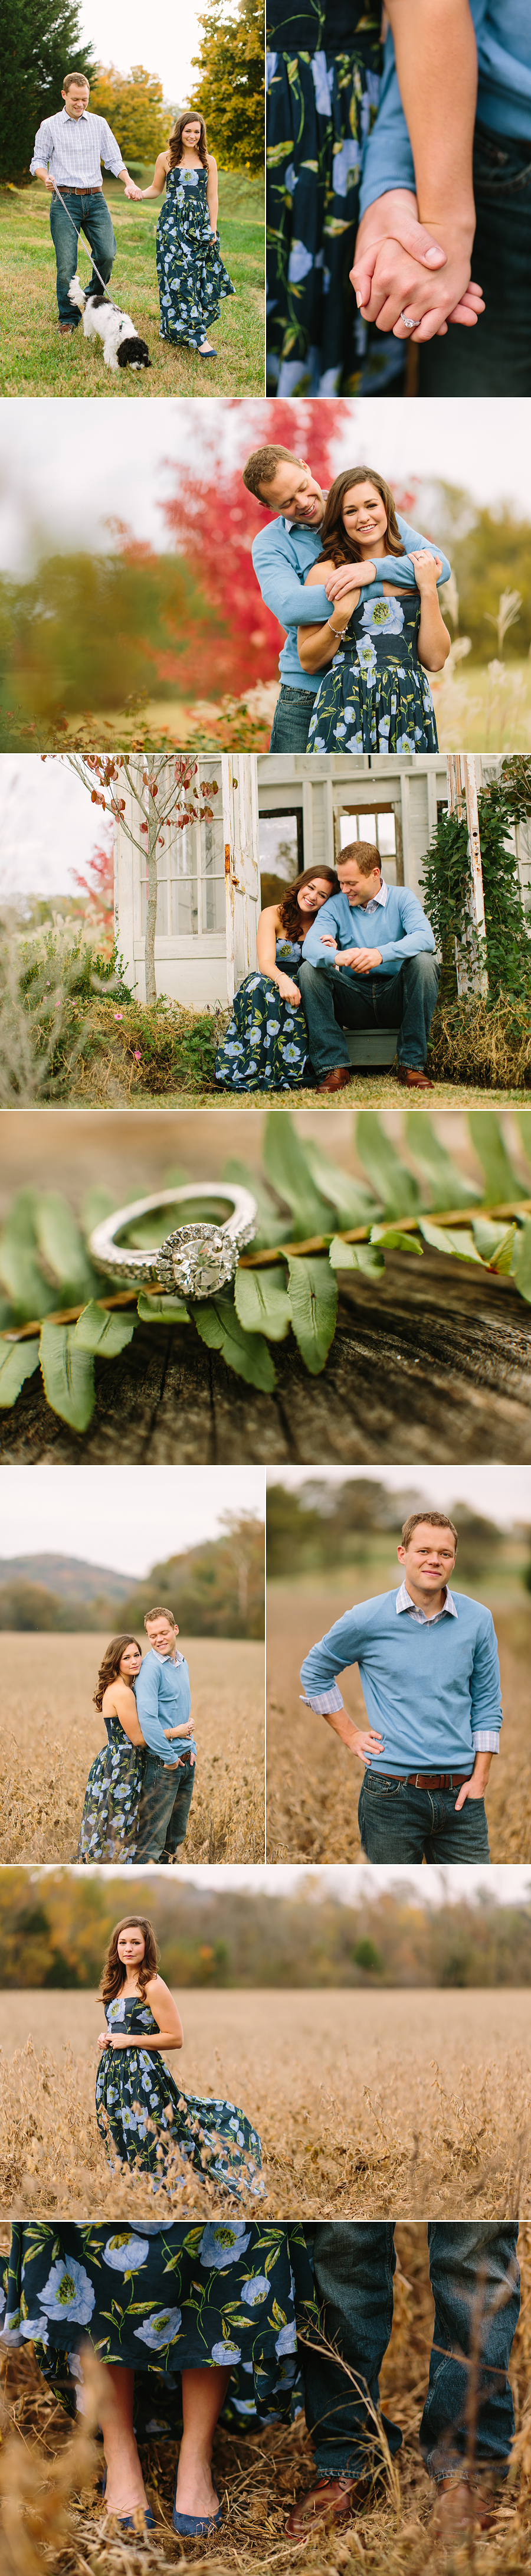 Mint Springs Farm Engagement Session